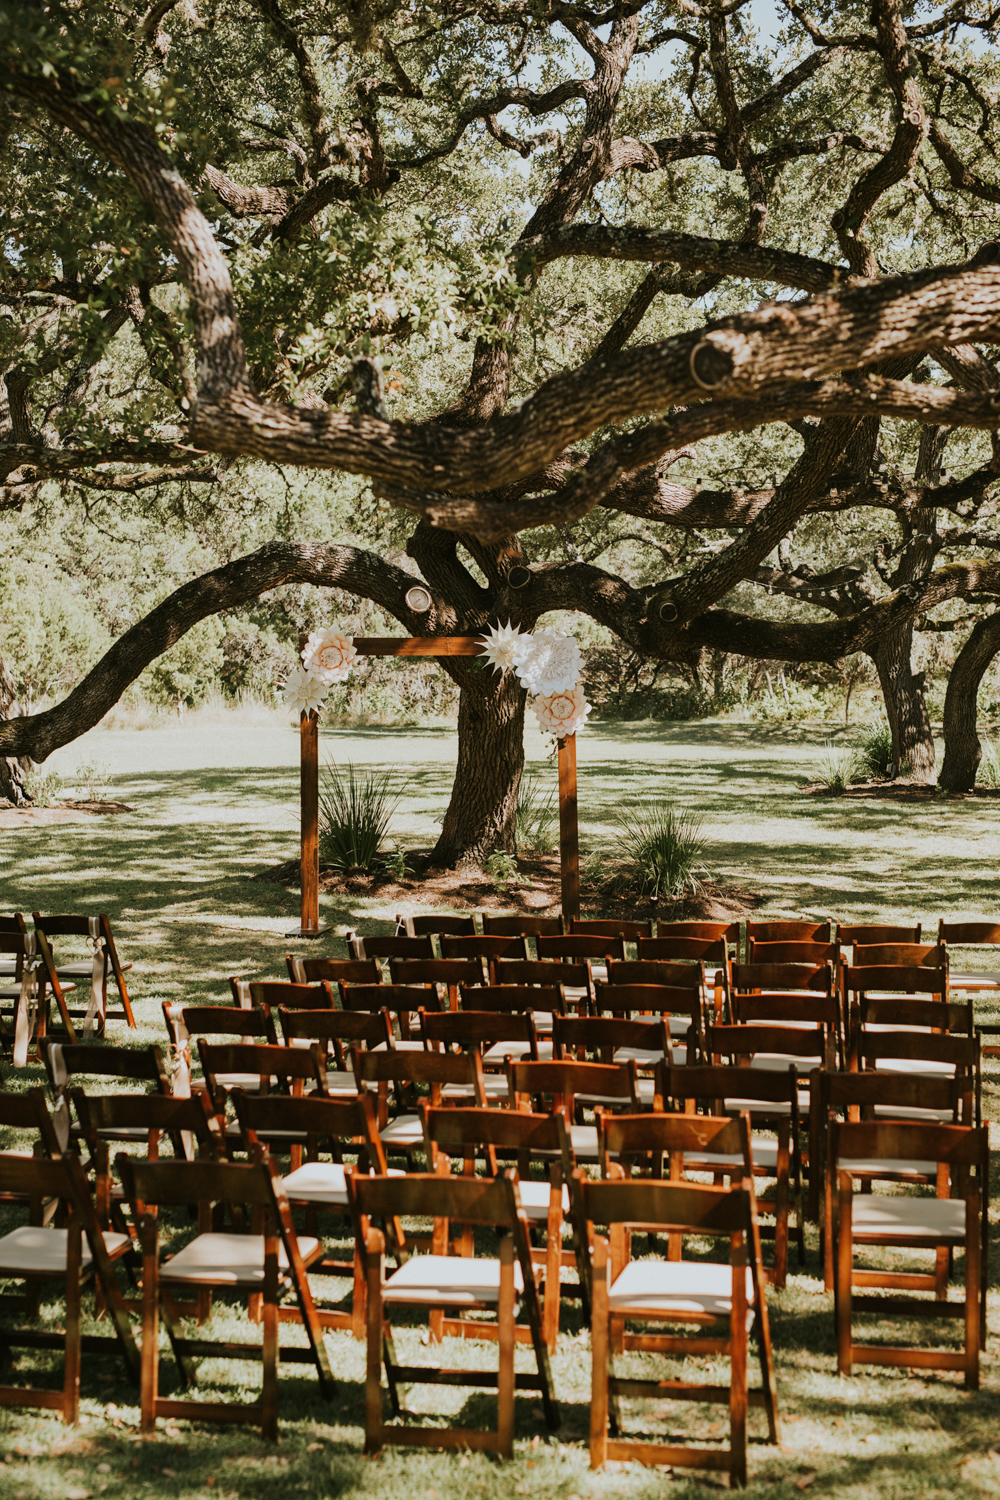 Rustic Ranch Wedding Photography - Diana Ascarrunz Photography - Austin Wedding Photographer-2.jpg